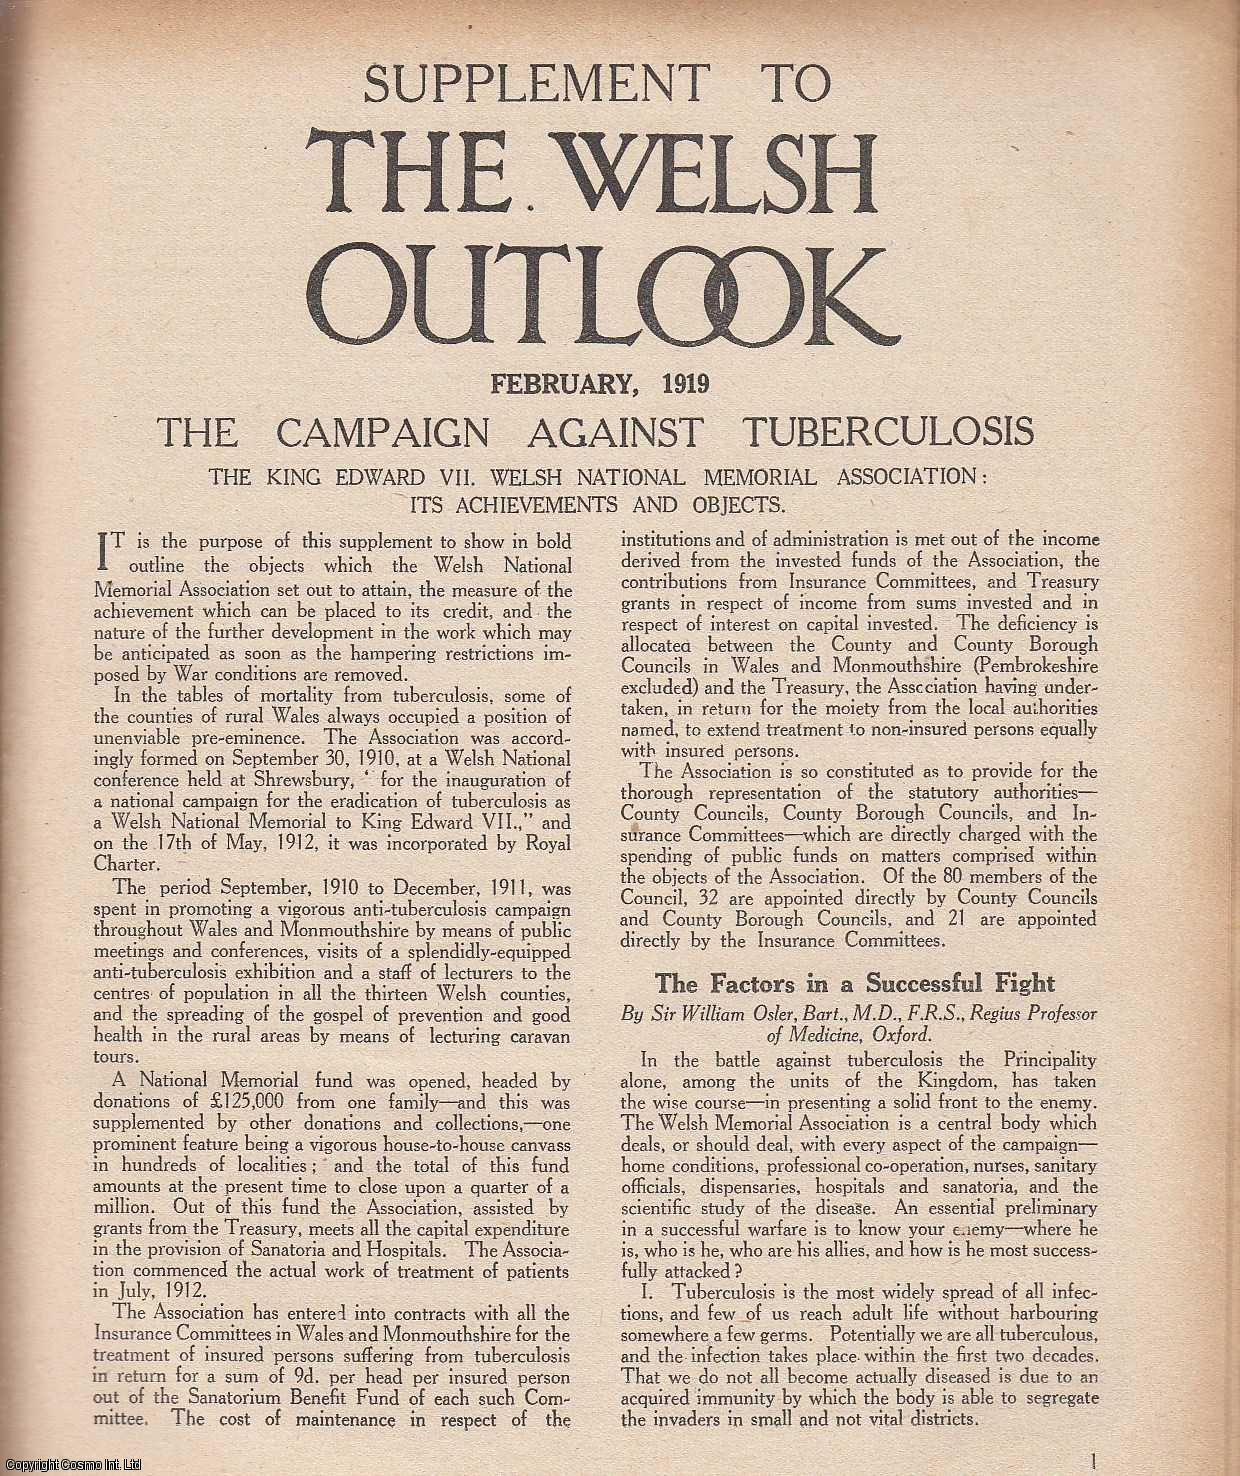 The Welsh Outlook. A Monthly Journal of National Social Progress, Supplement, February 1919.  The Campaign against Tuberculosis: The King Edward VII. Welsh National Memorial Association: Its Achievements and Objects., Thomas Jones (Editor)